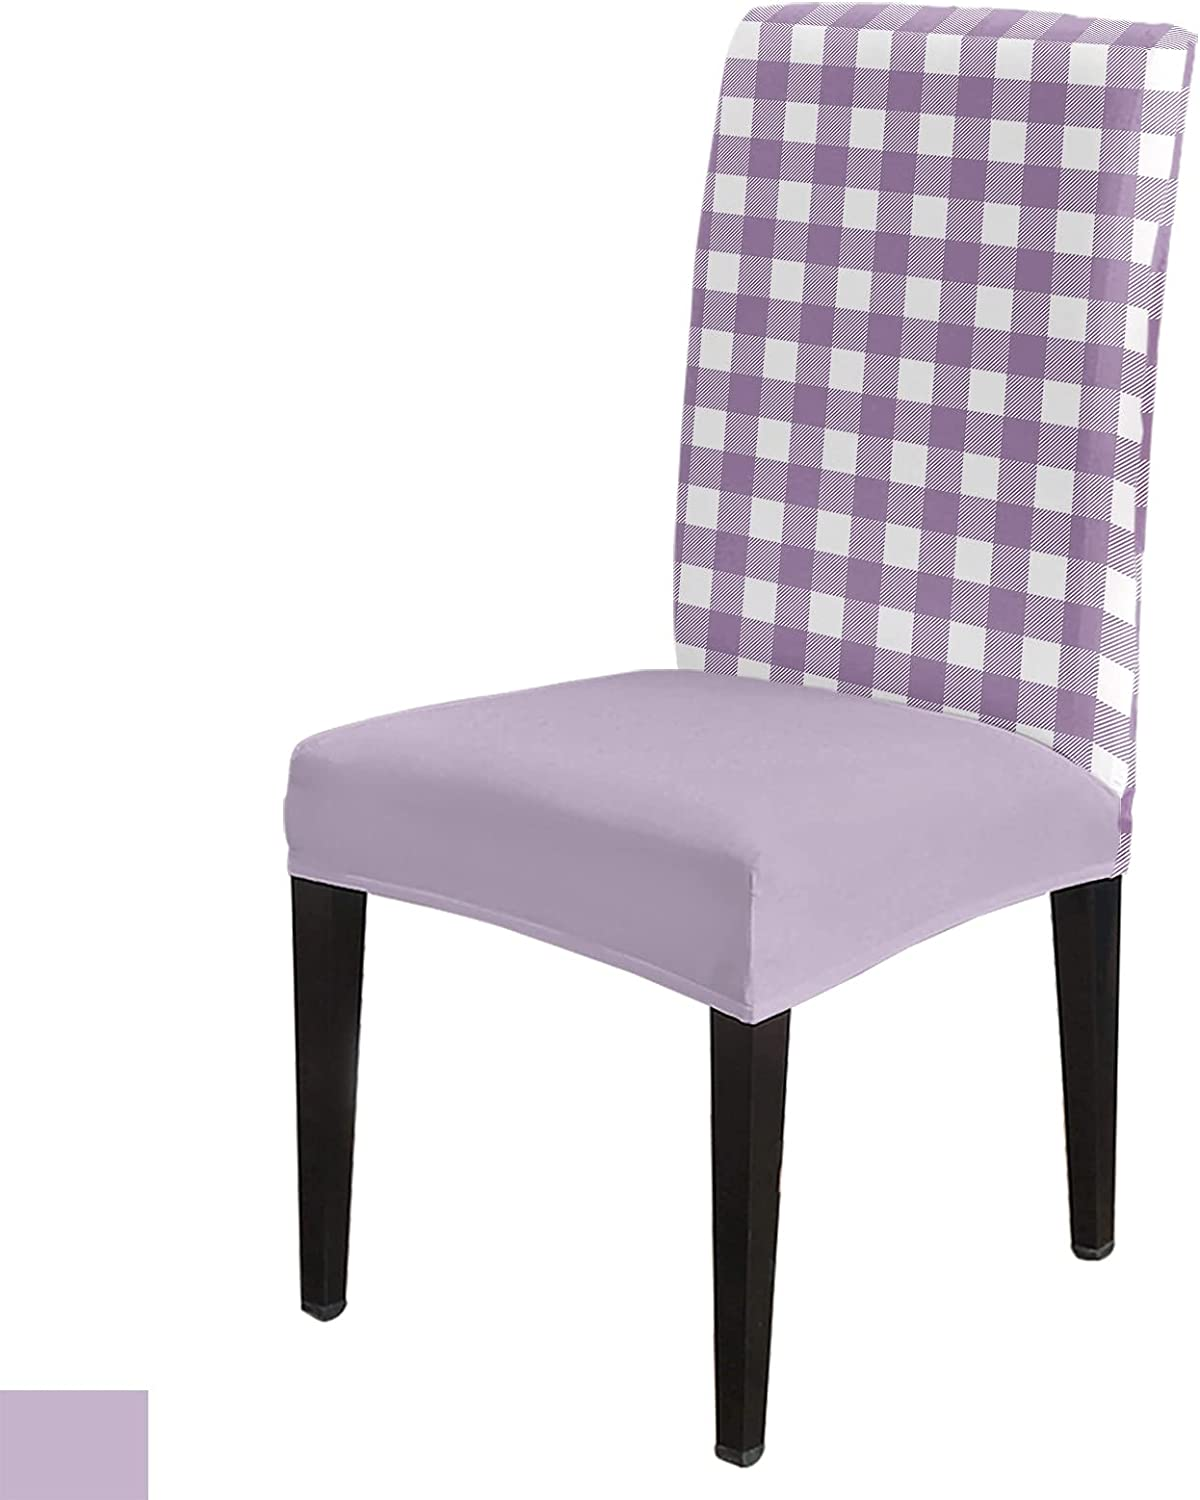 6 Per Opening large release sale Set Geometric Pueple Checkered Soldering Chair for Roo Dining Covers